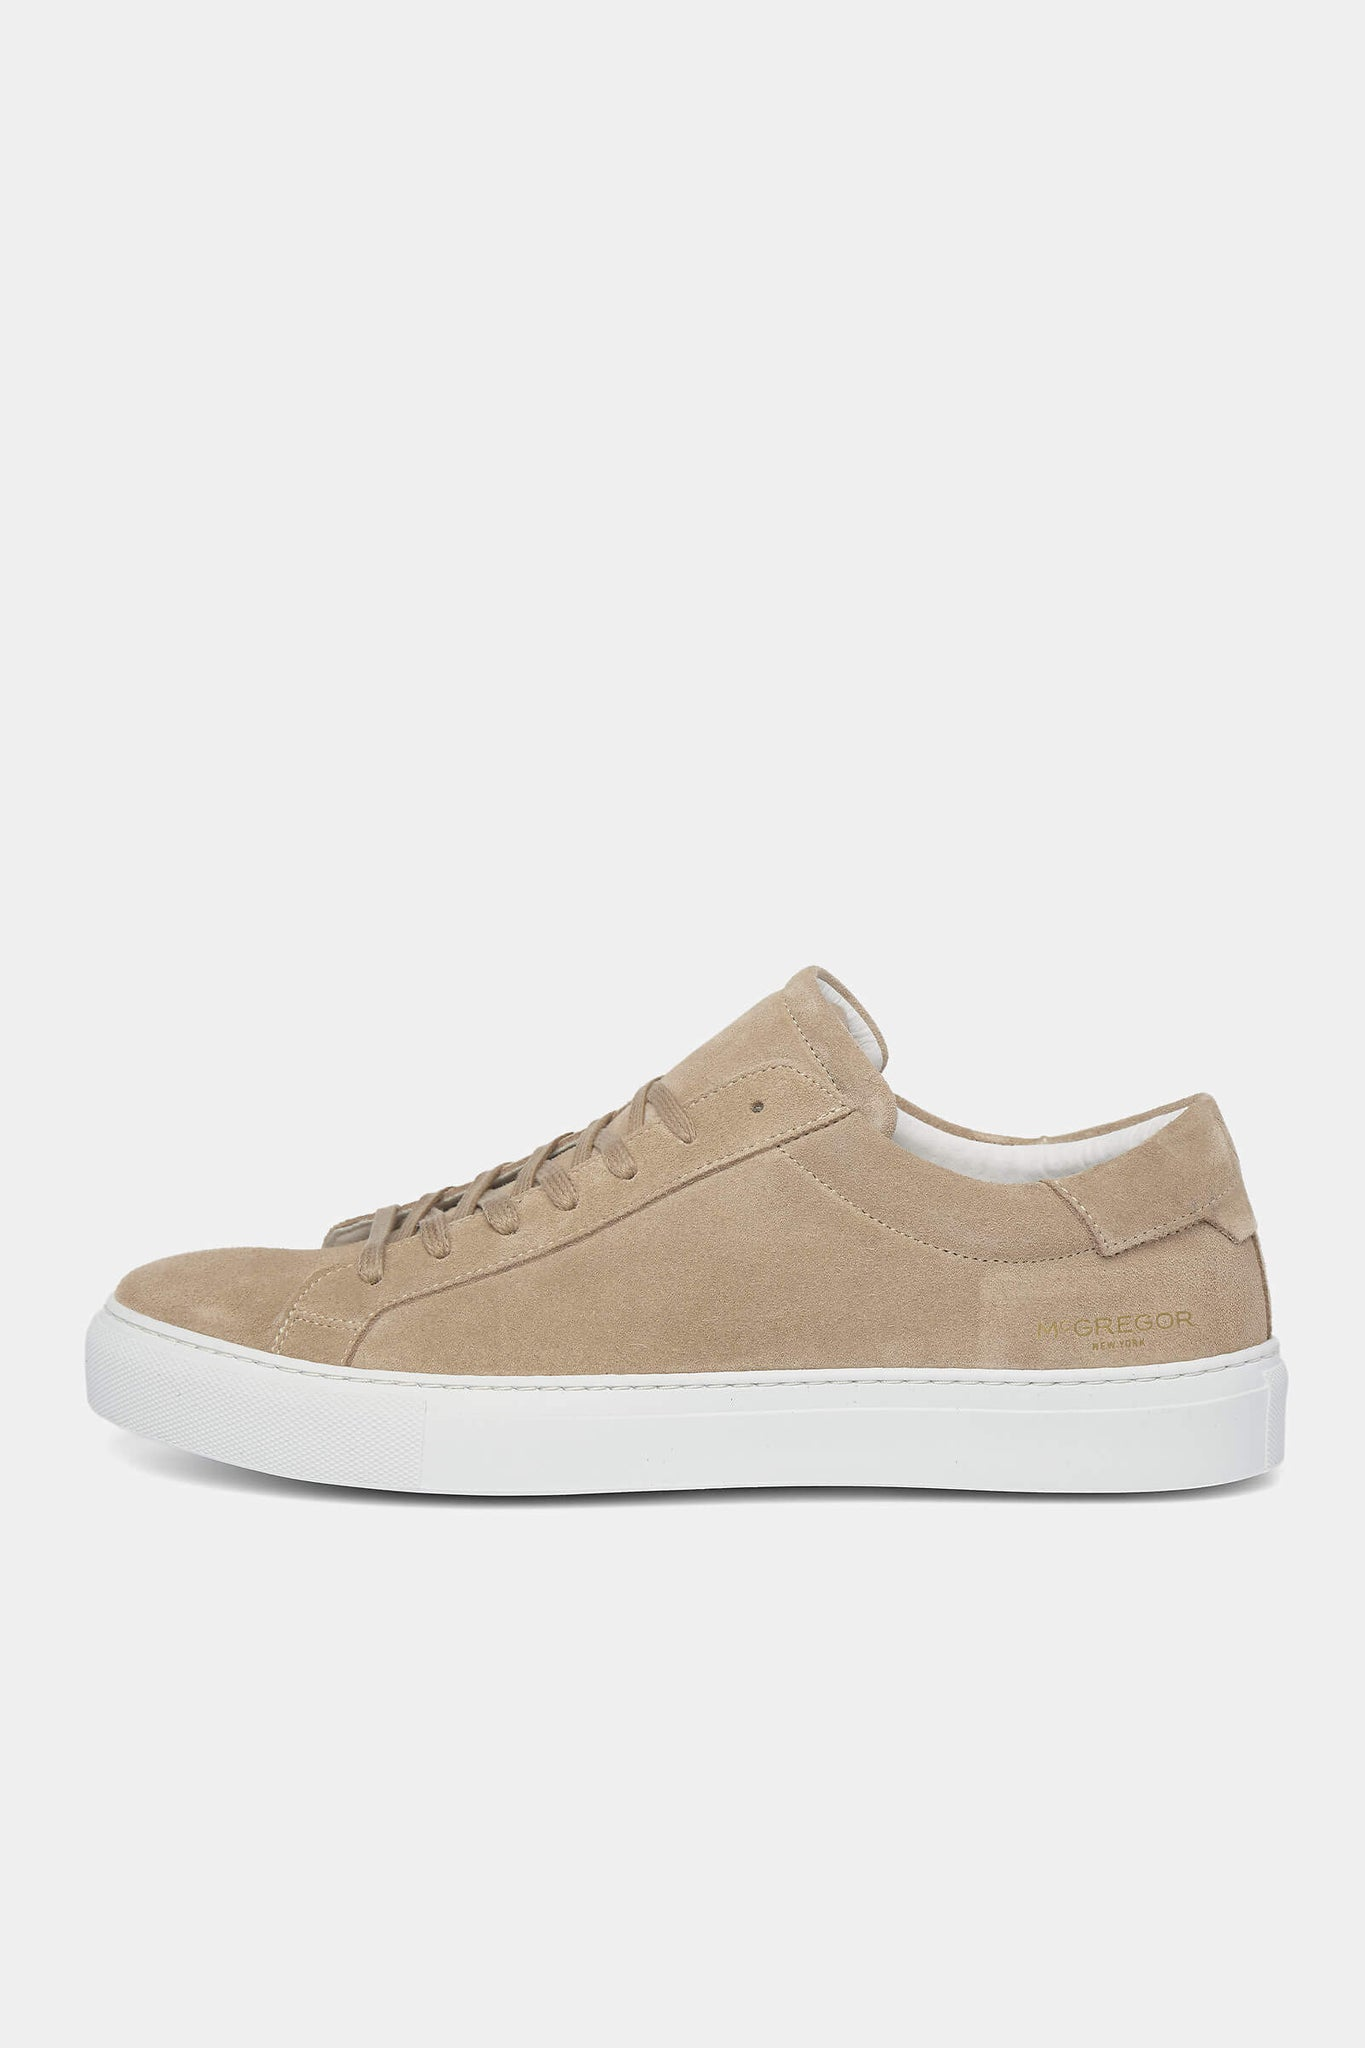 The McG Beige Suede Sneakers